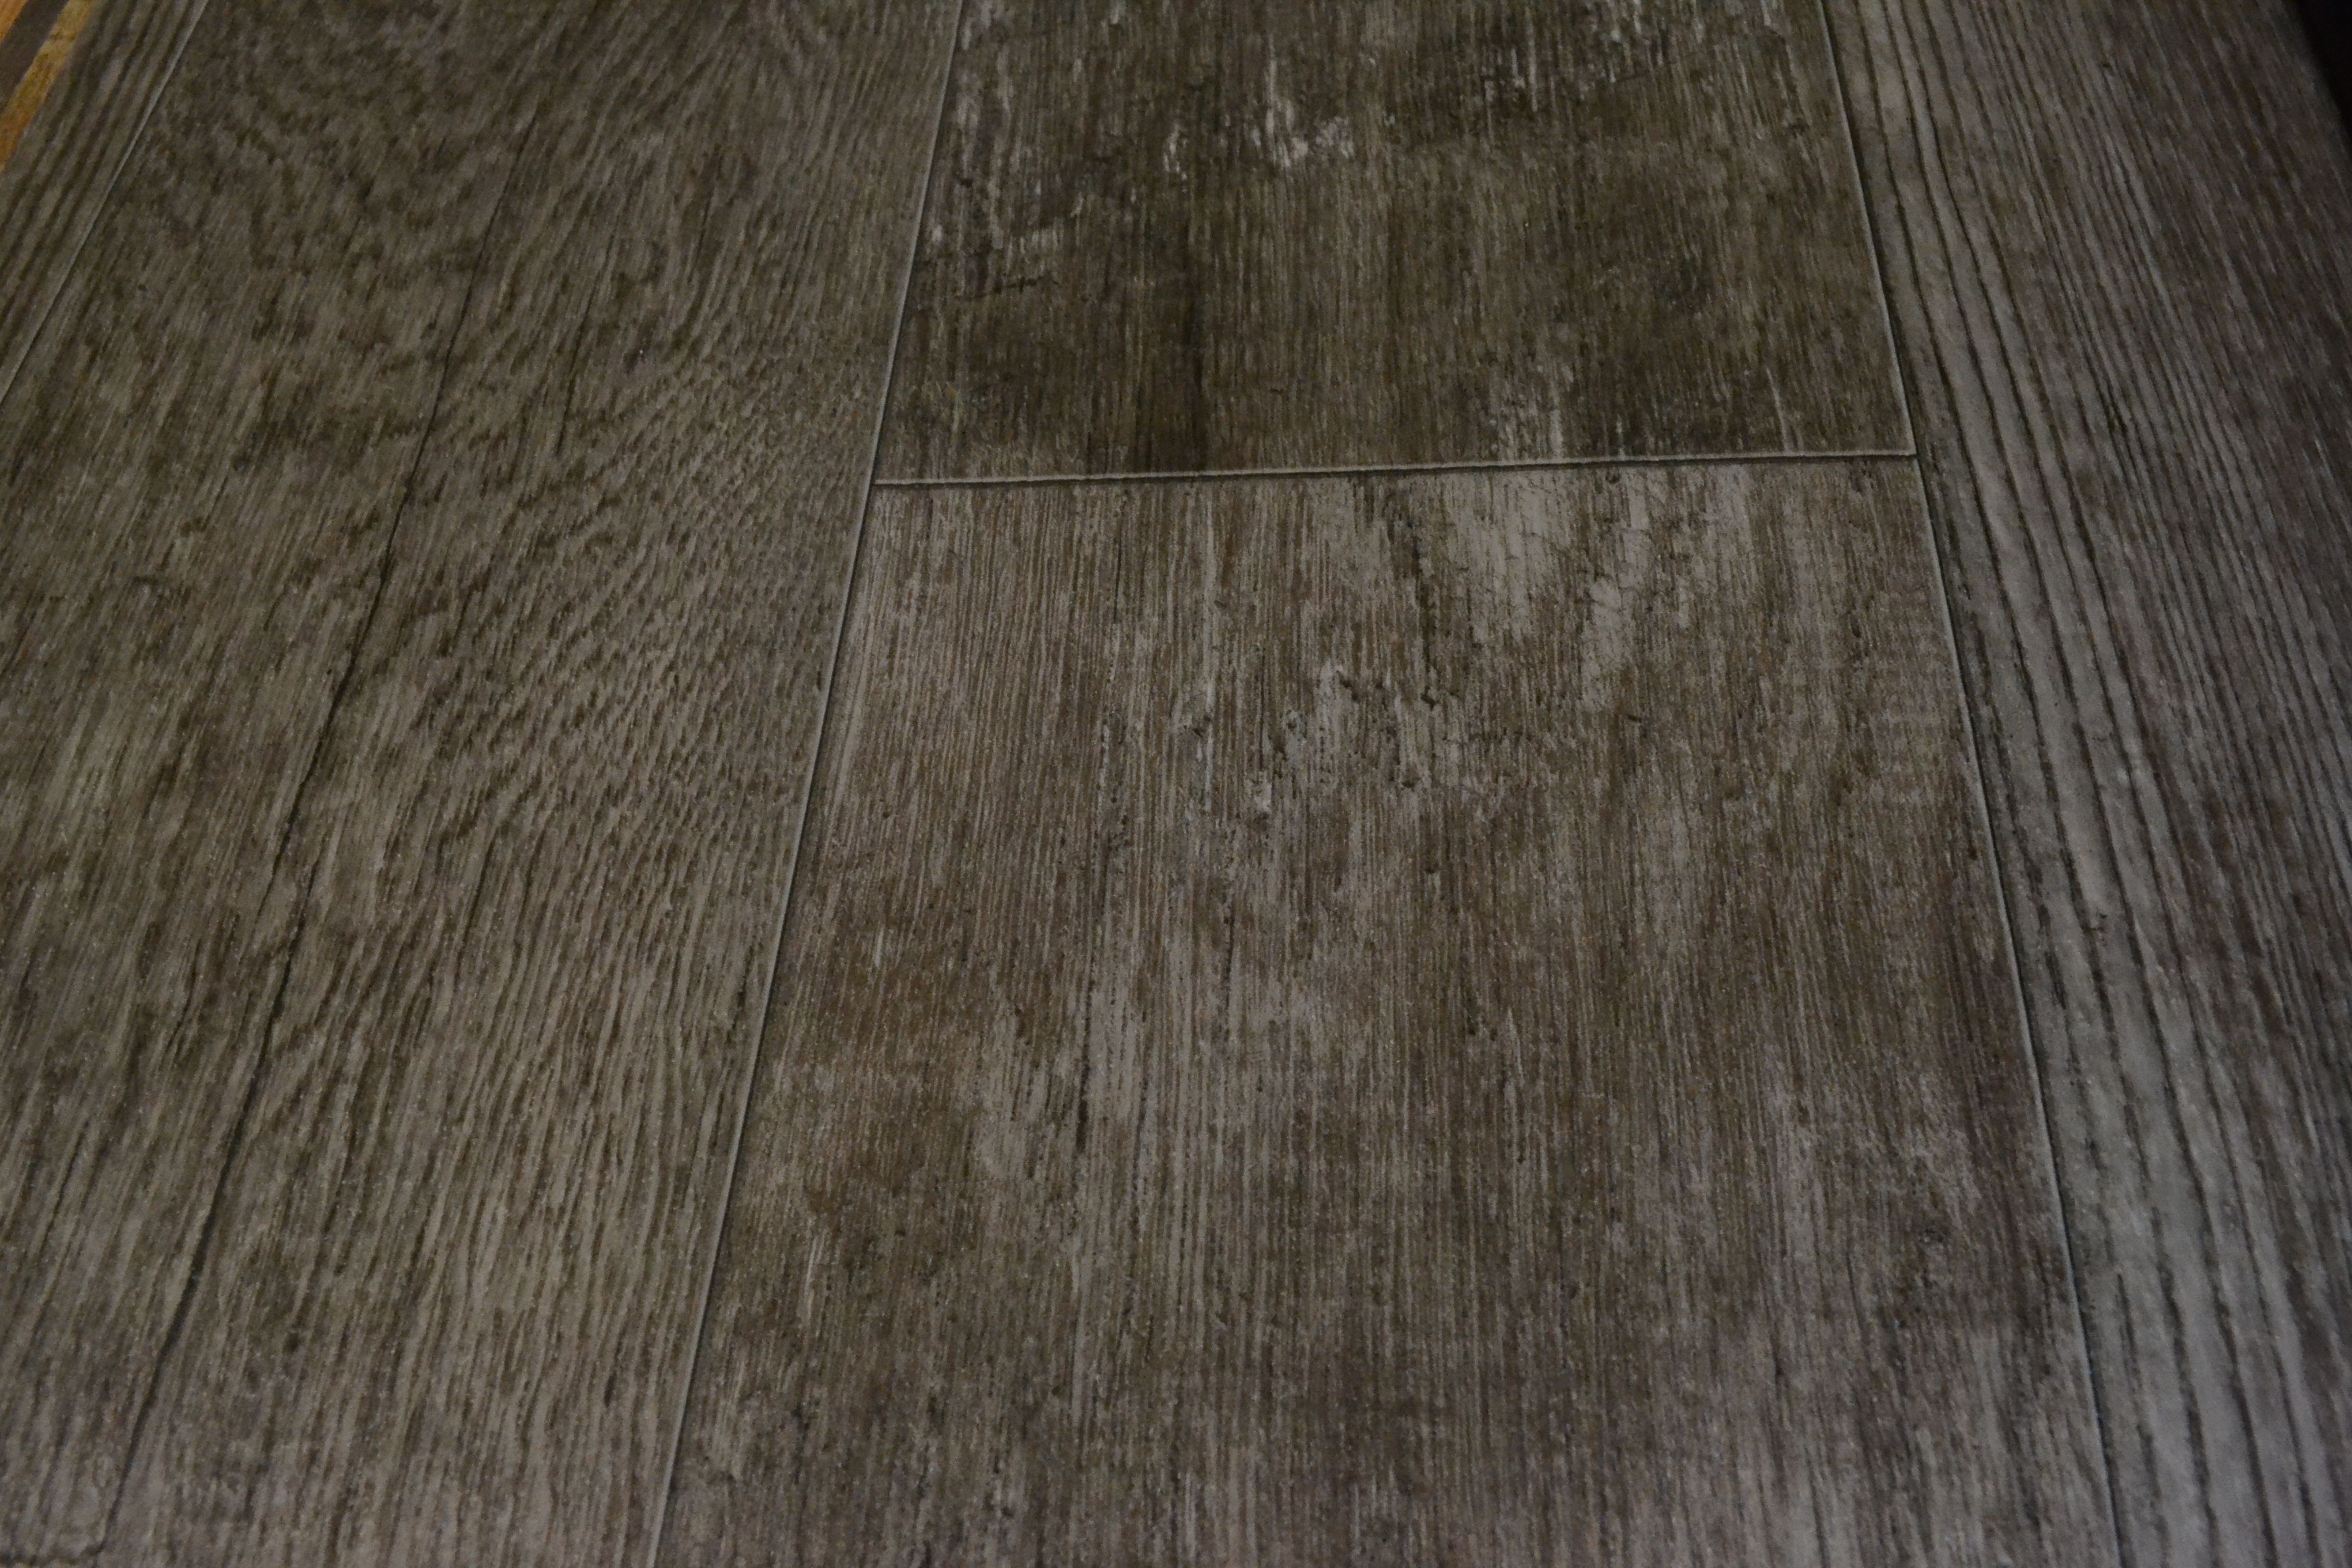 gloss vinyl plank best floors cherry ft mulholland wood low sheet finish fresh shop carbon w floating flooring vision moduleo luxury stainmaster of